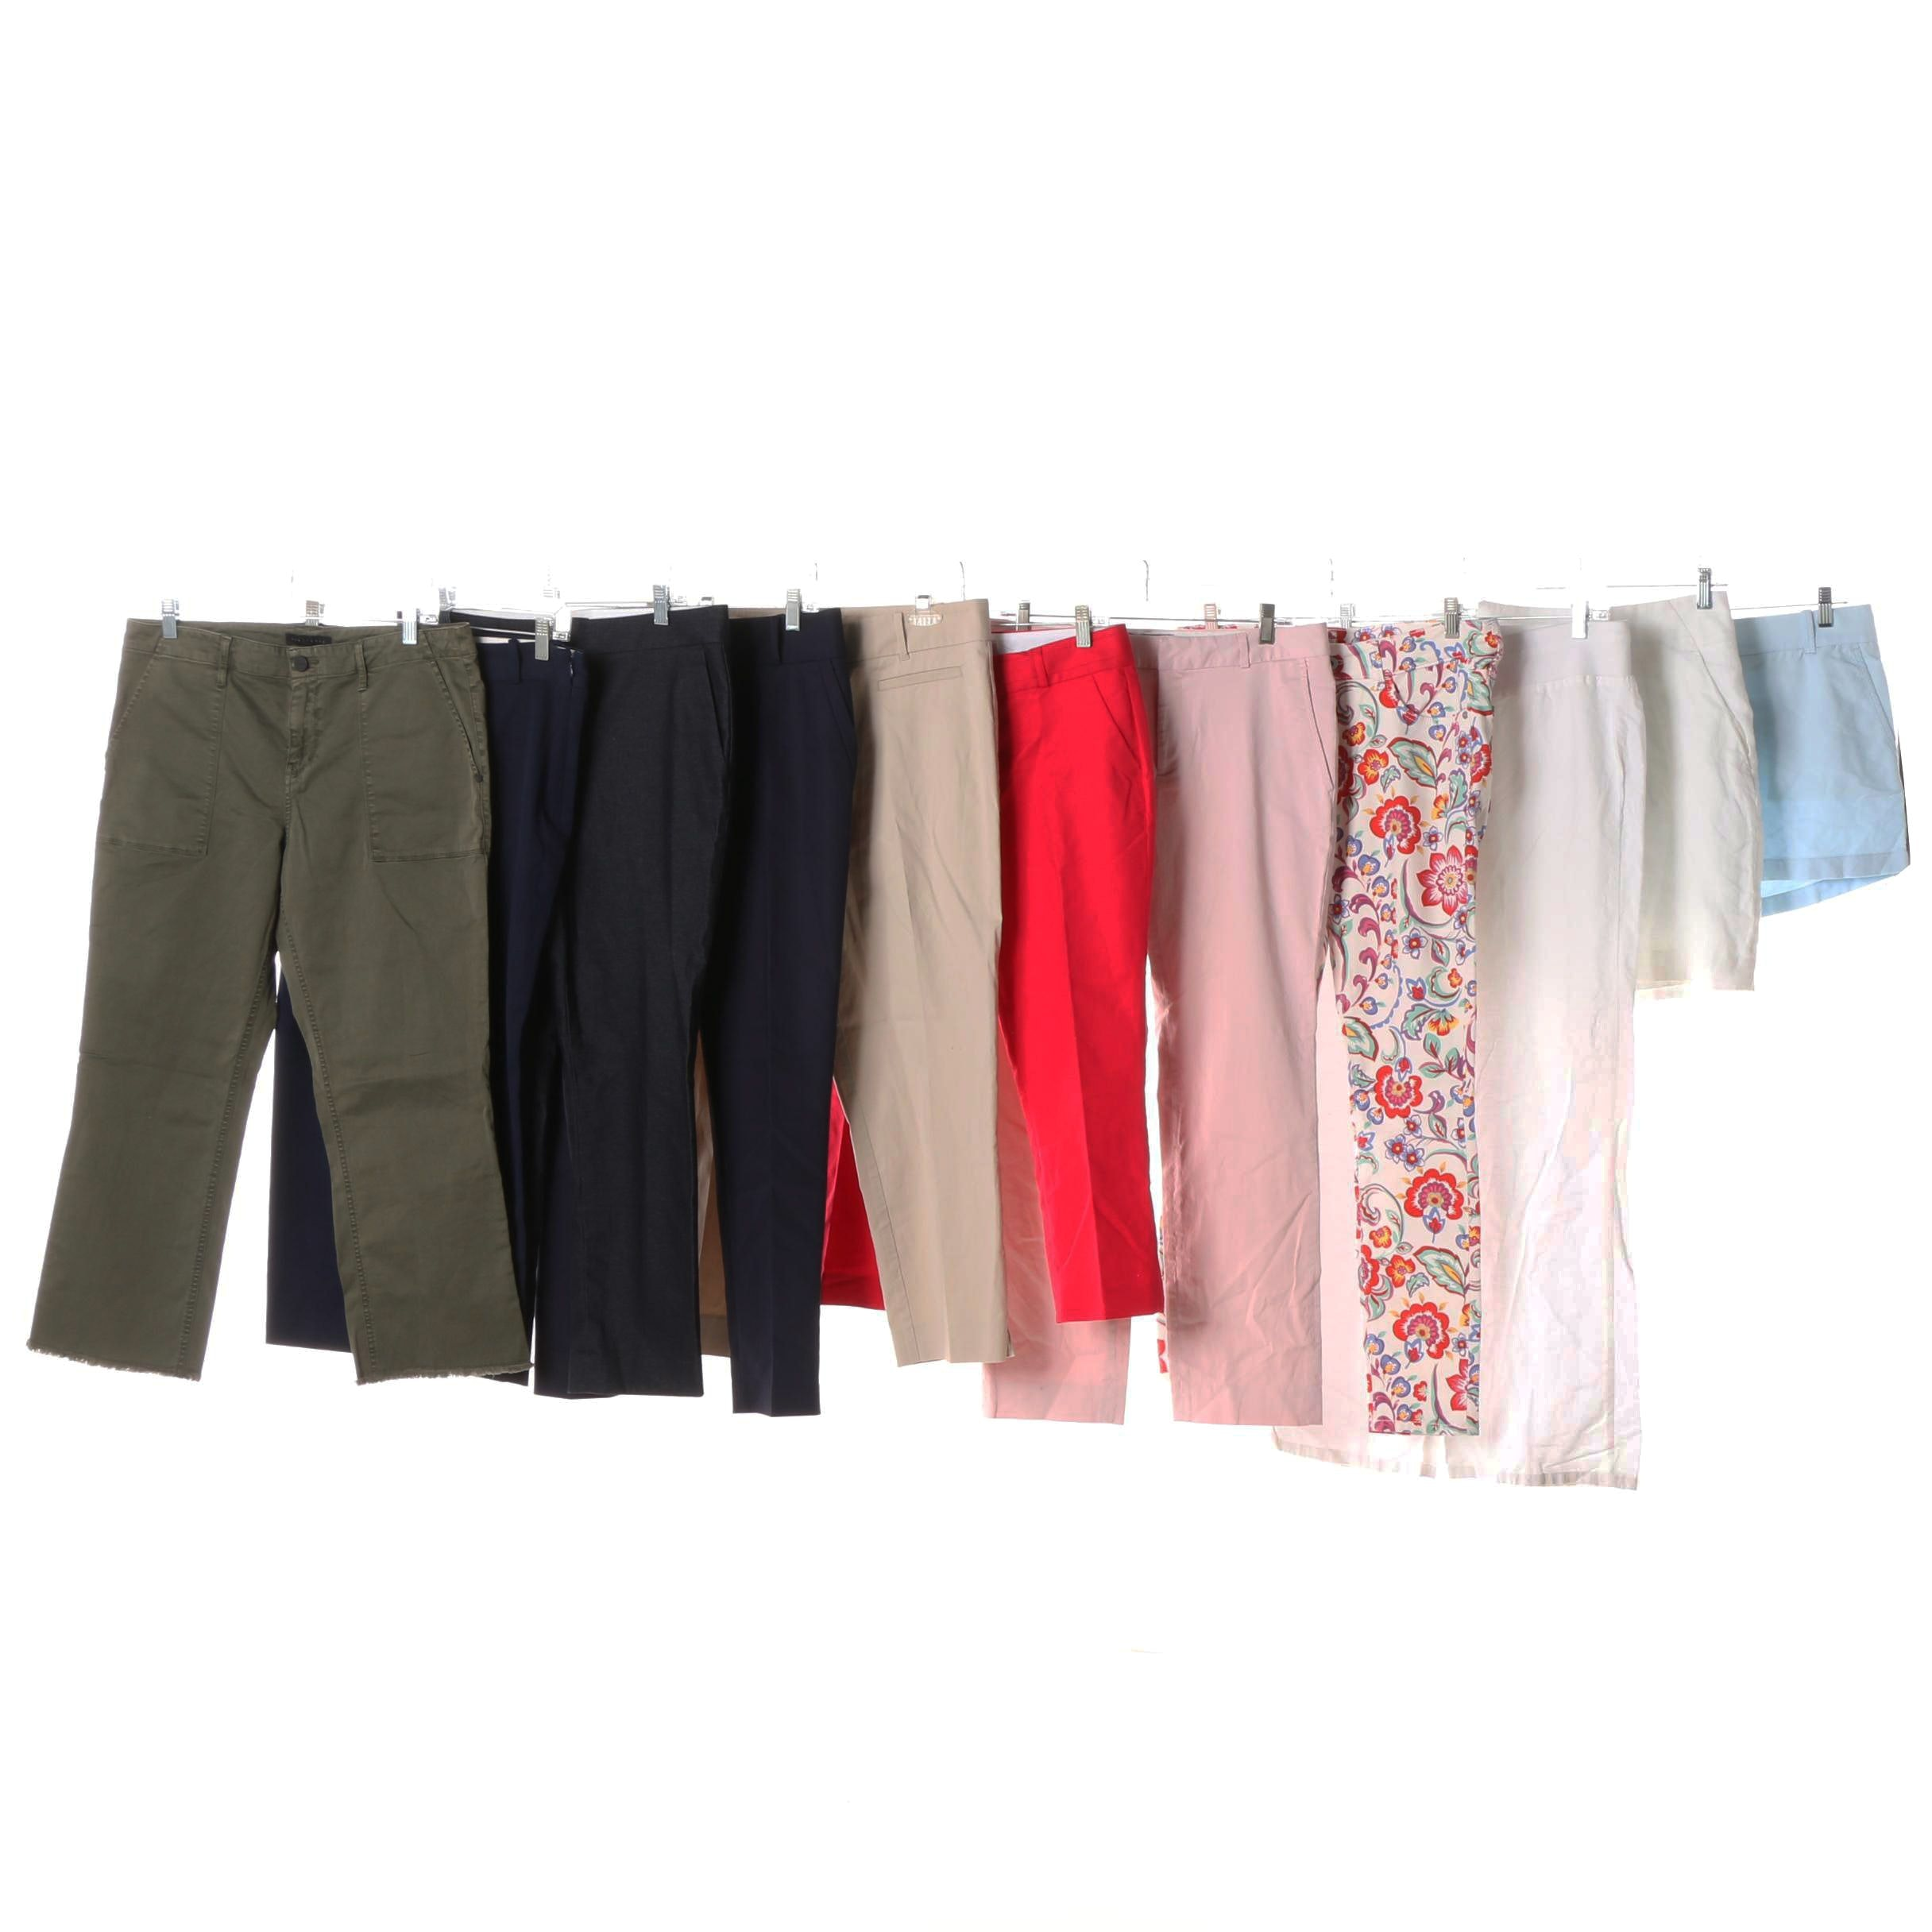 Women's Pants, Skirt and Shorts including Ann Taylor, Banana Republic and J.Crew